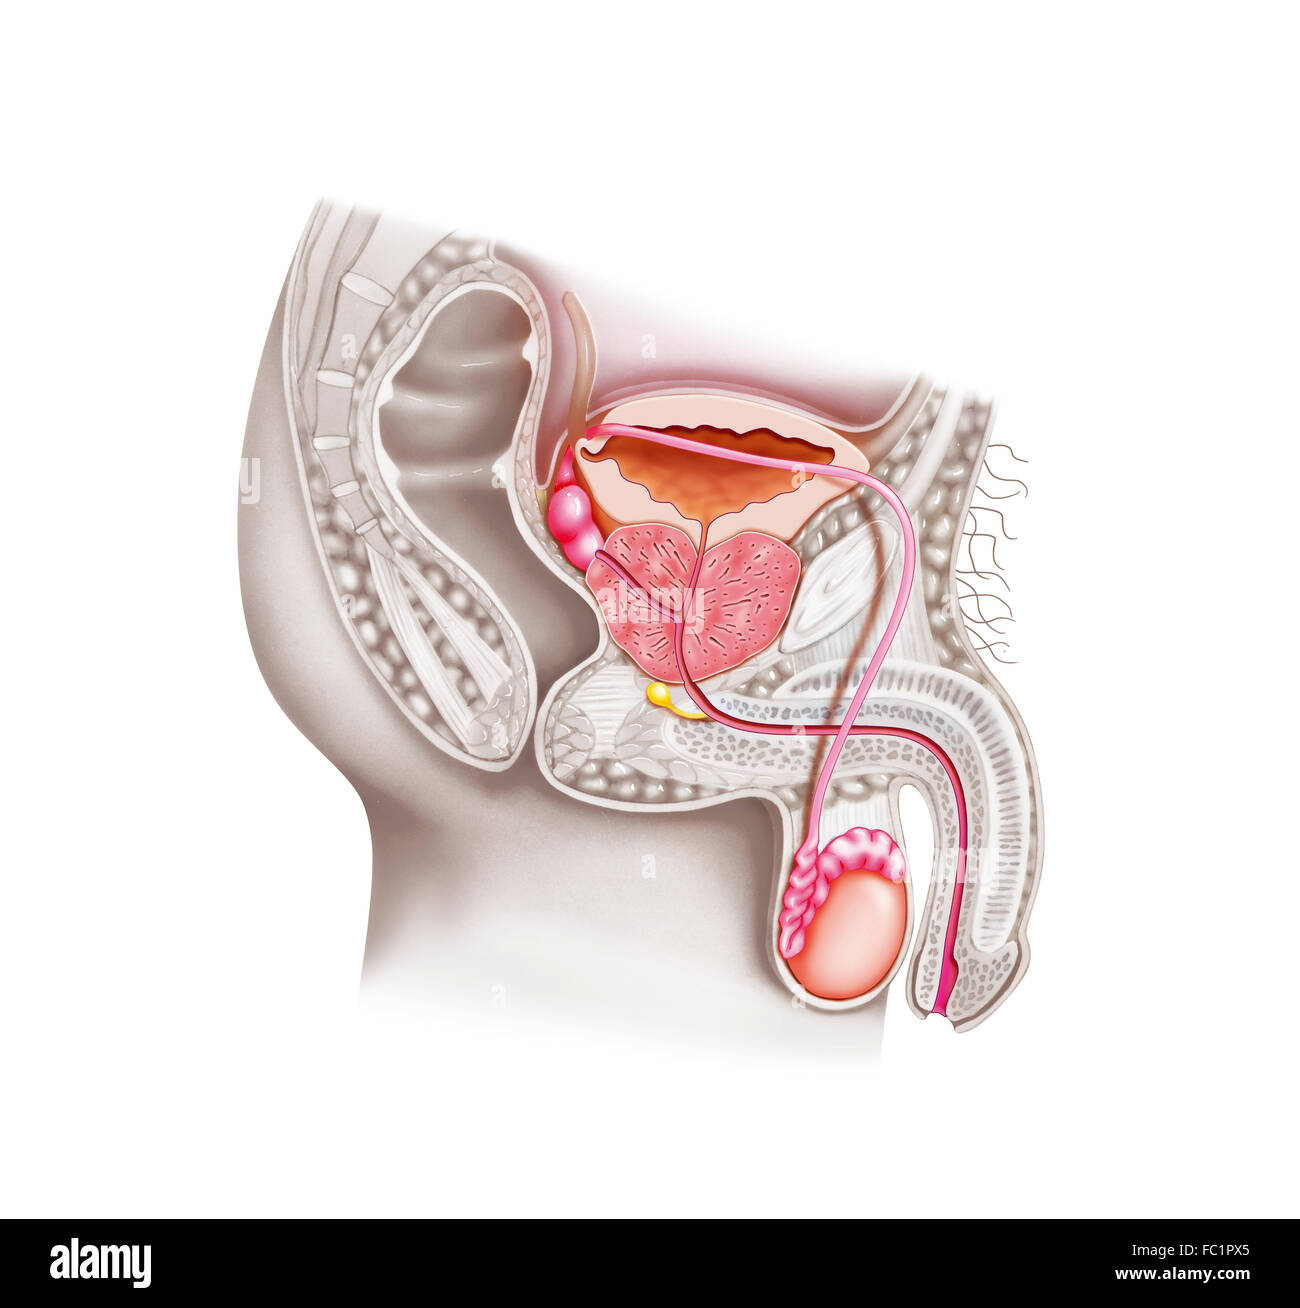 Anatomy Male Genitalia Stock Photos Anatomy Male Genitalia Stock